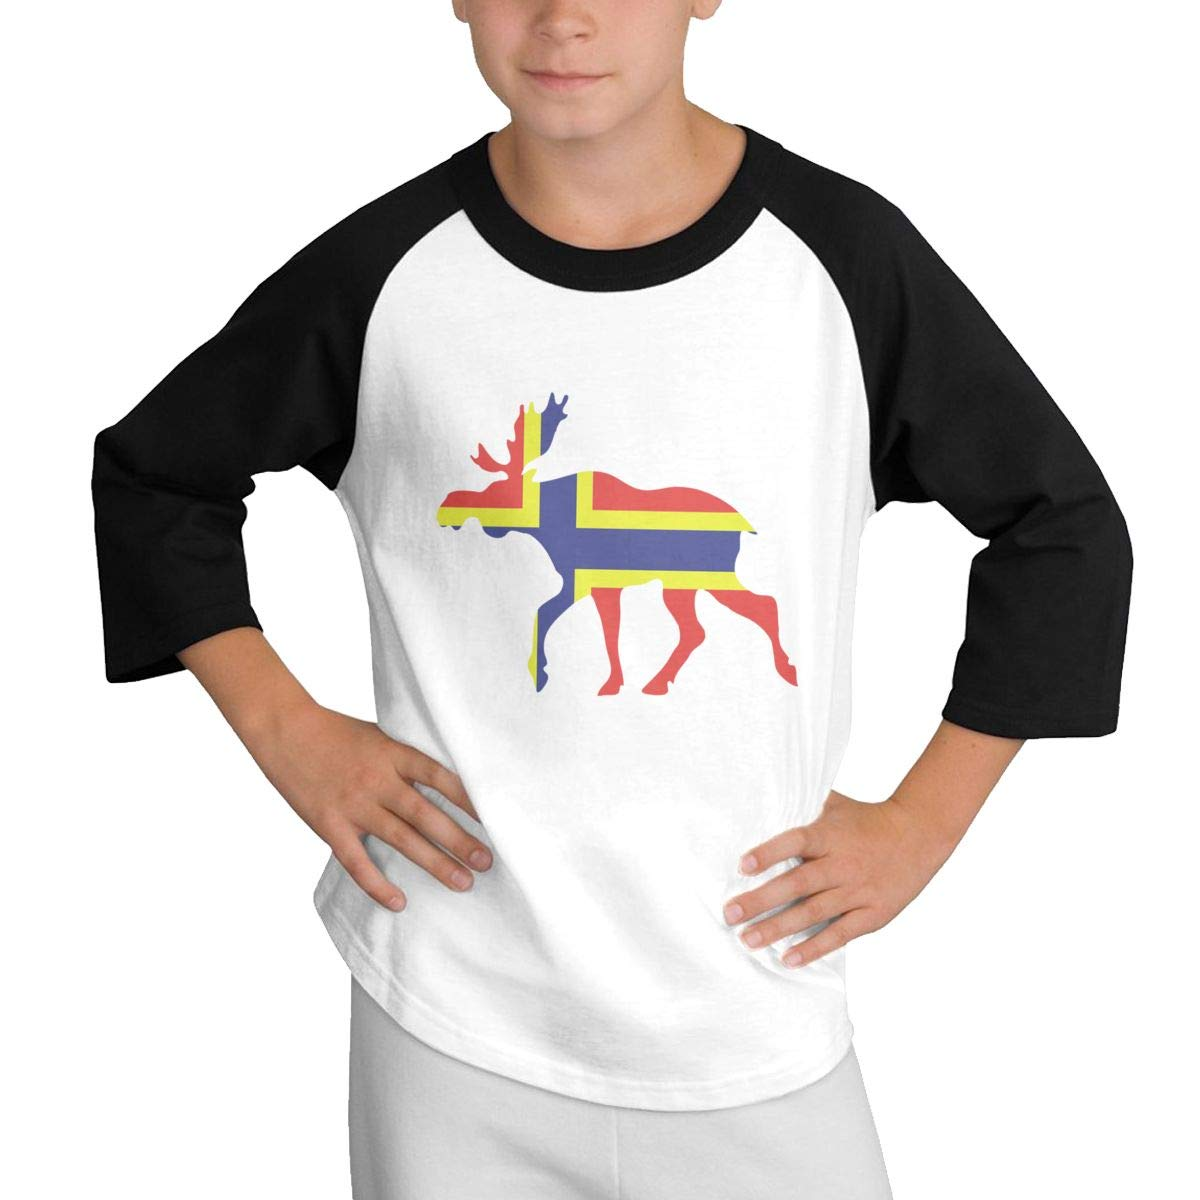 Qiop Nee Norwegian Moose Flag Raglan 3//4 Short Sleeves Tshirt Youth Girl Boys